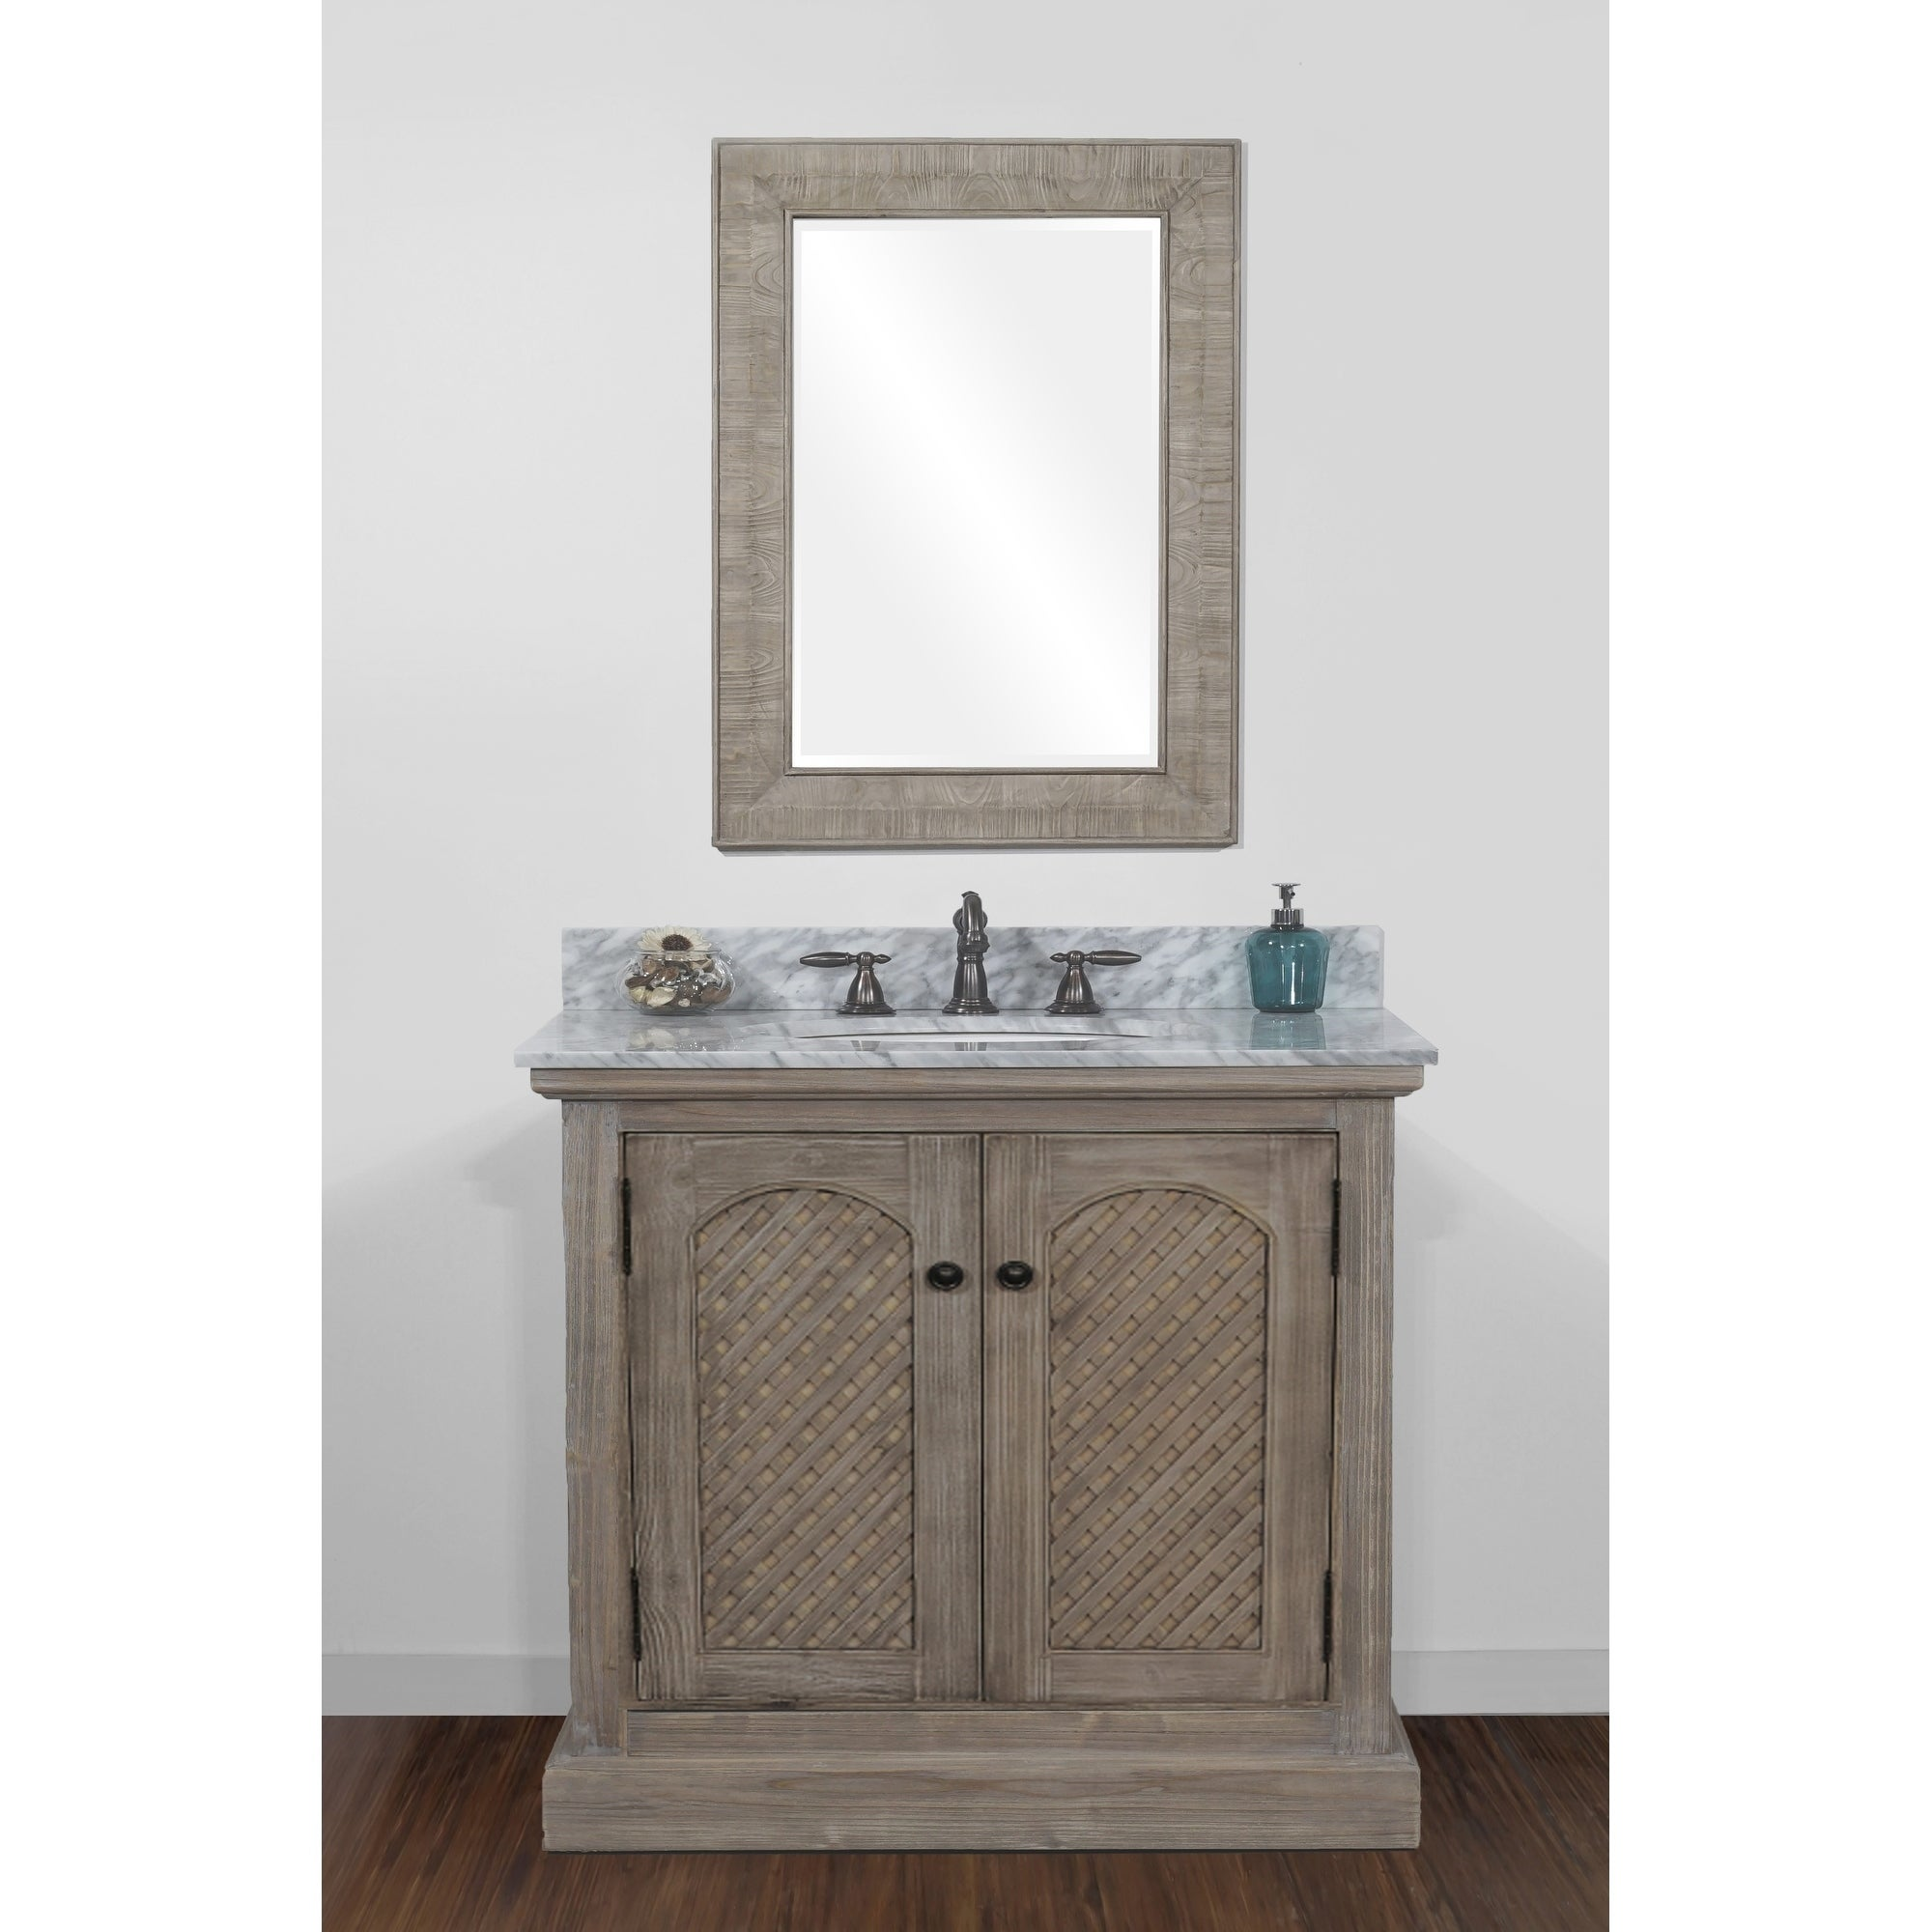 Rustic Style 36 Inch Natural Stone